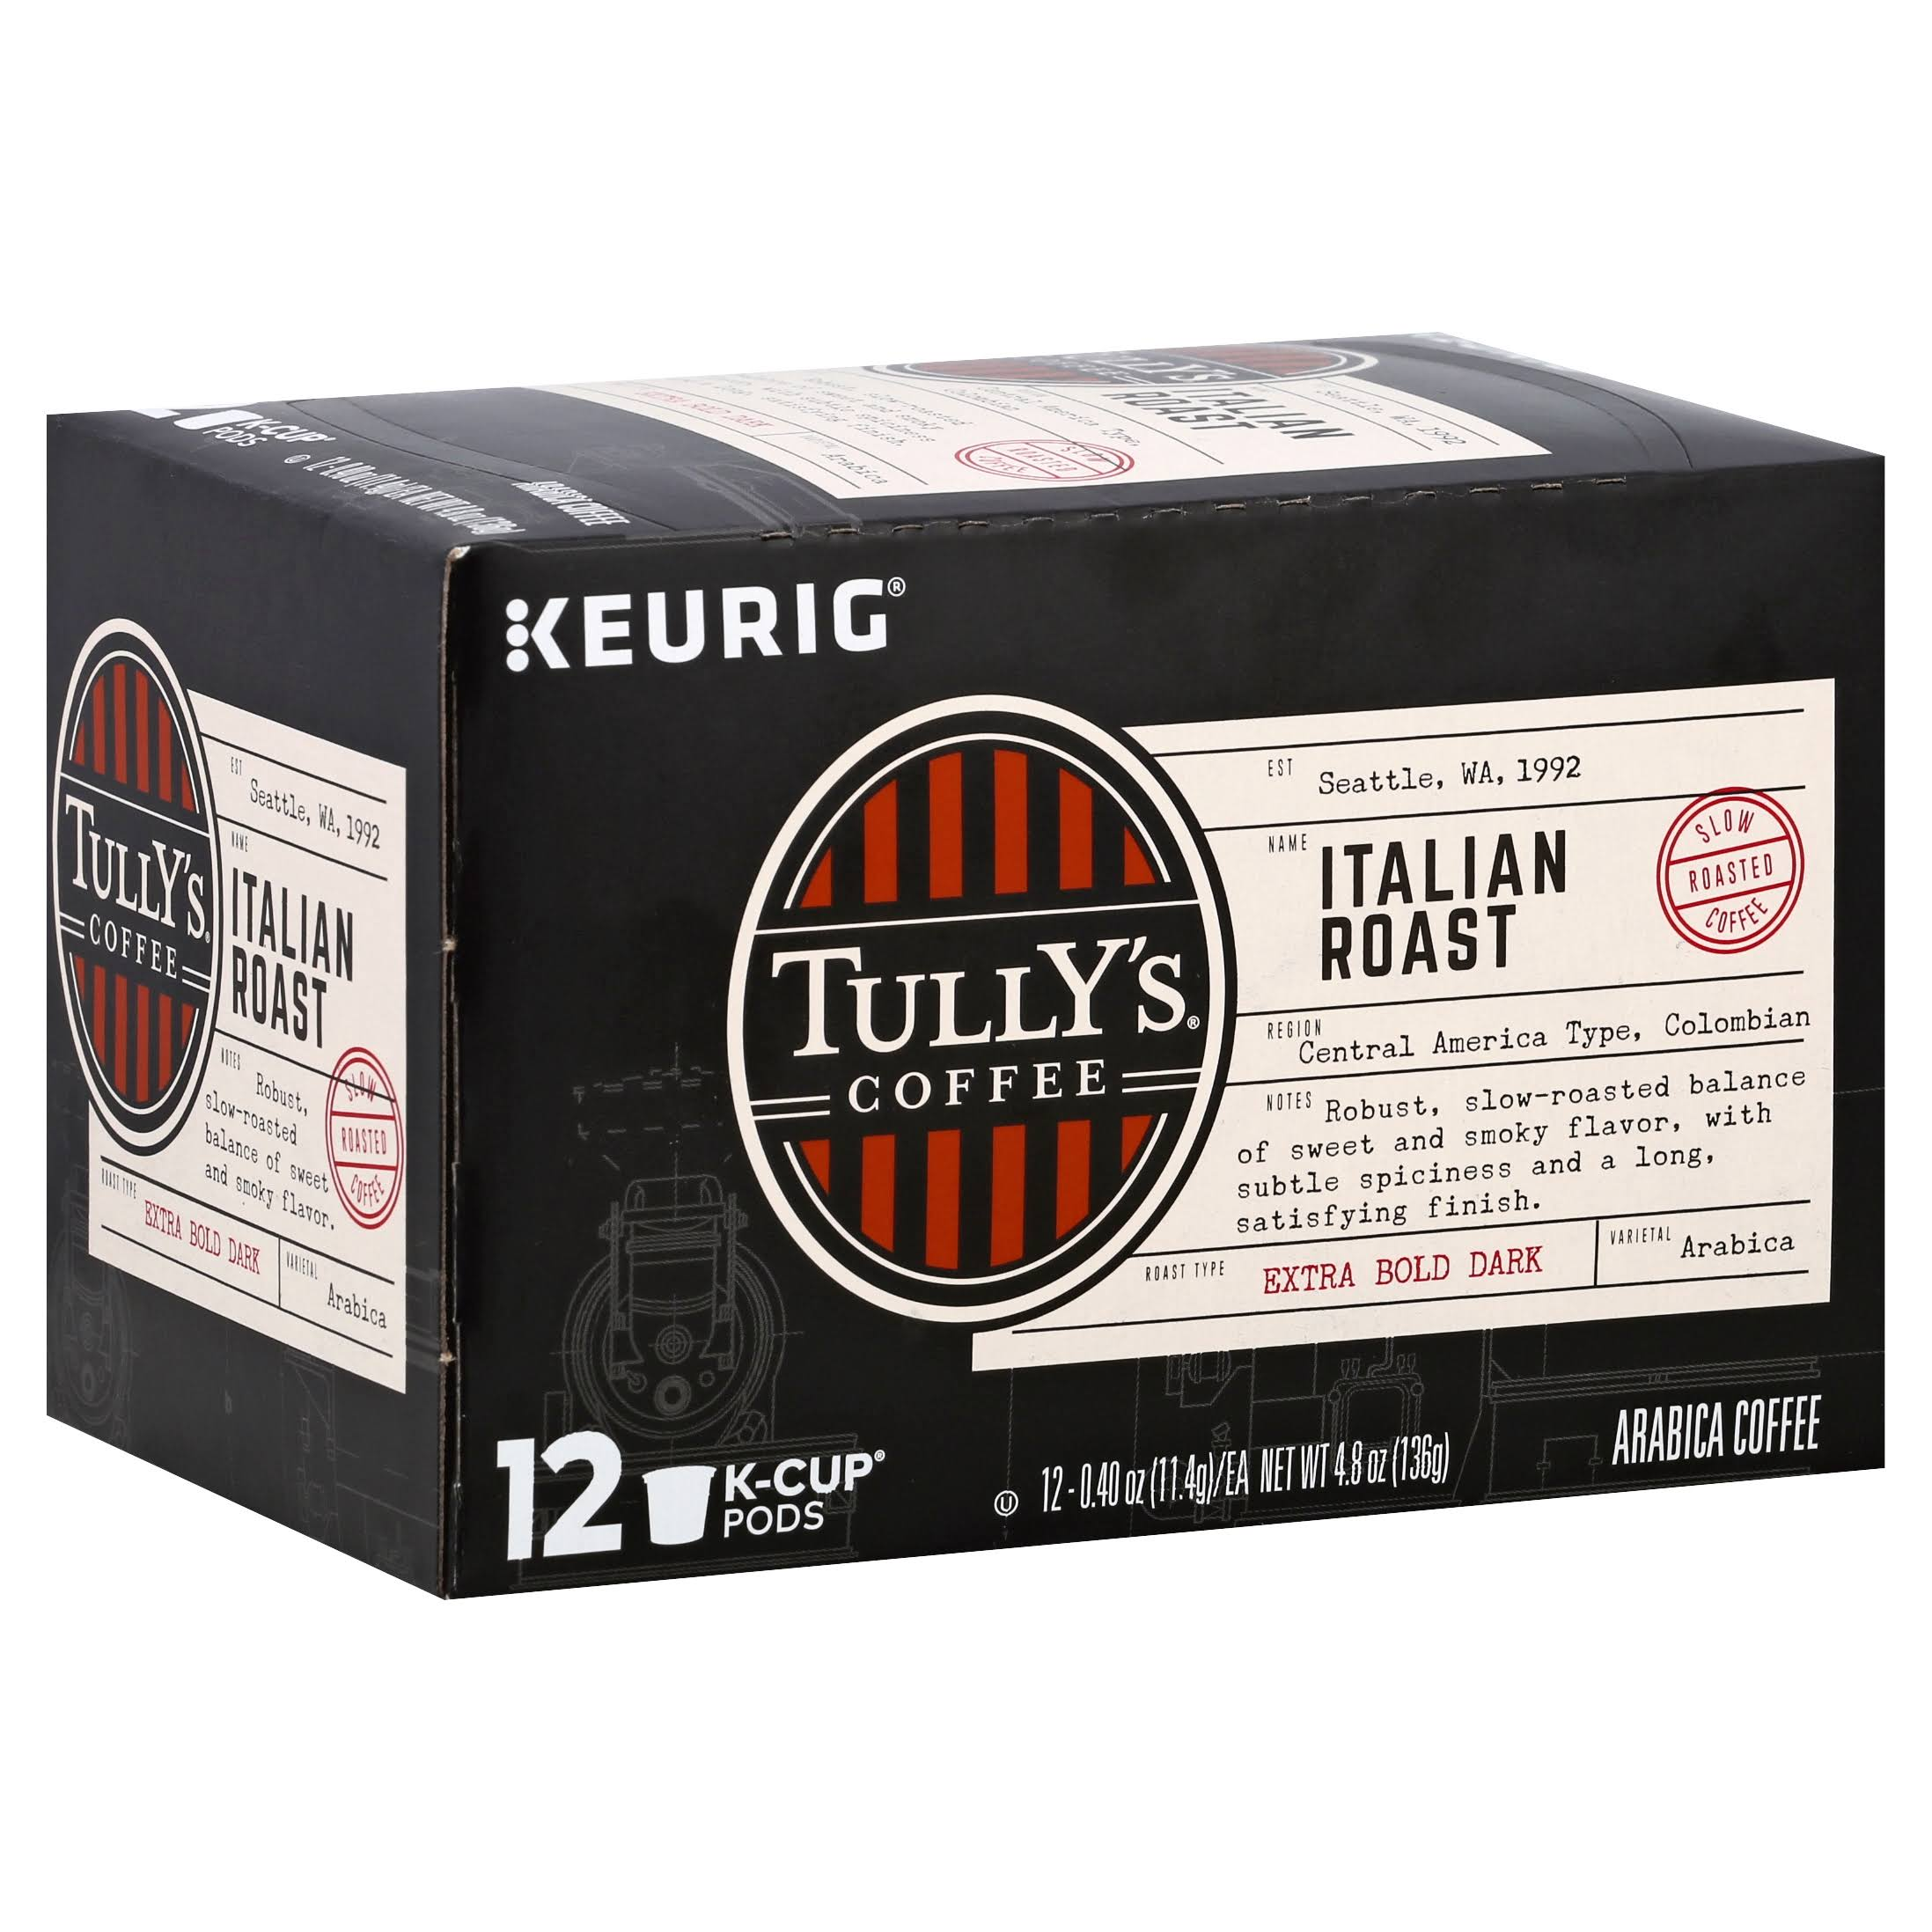 Tully's Coffee Keurig Dark Roast Coffee K-Cups - Italian Roast, 12ct